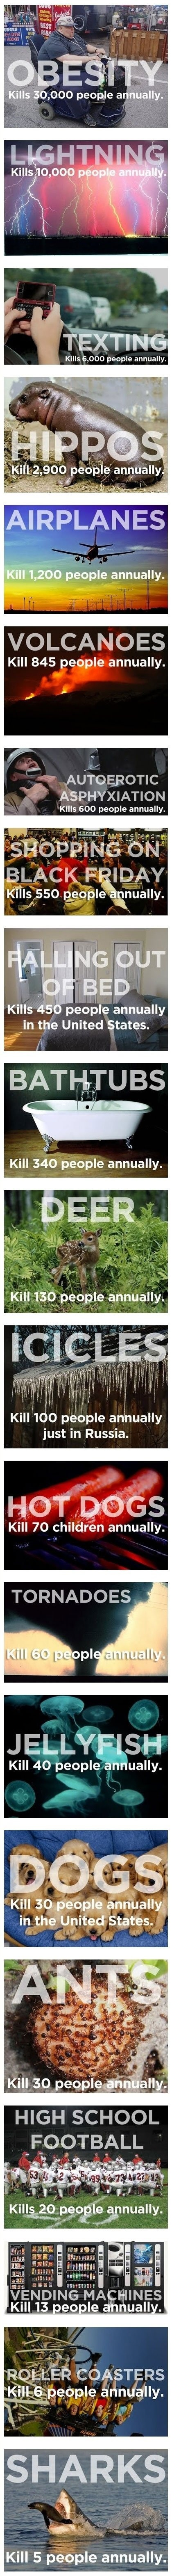 Things that kill more people than sharks